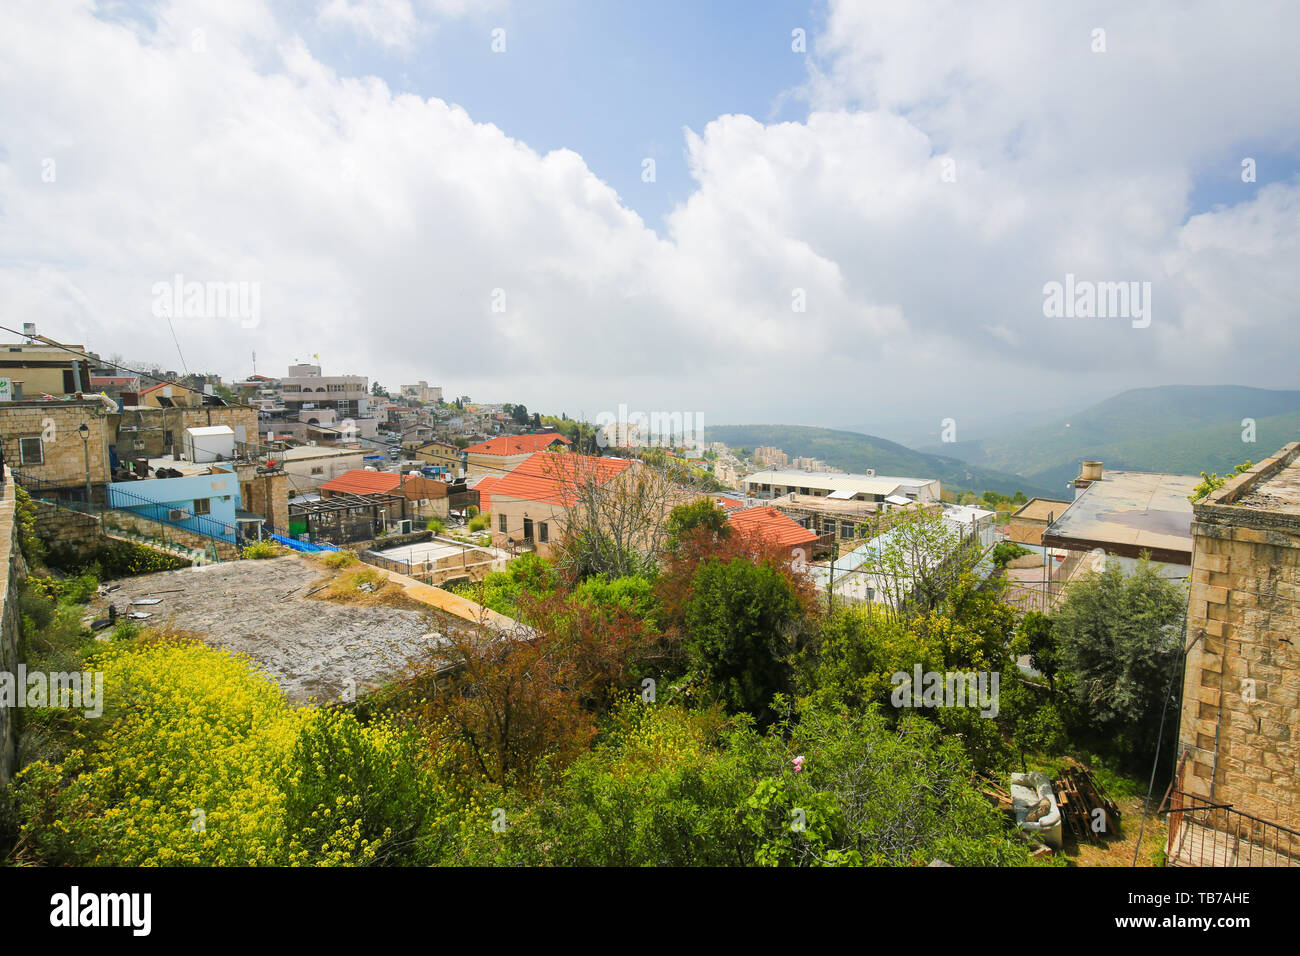 View of Safed, a city in the Northern District of Israel. Located at an elevation of 900 metres, Safed is the highest city in the Galilee and in Israe Stock Photo